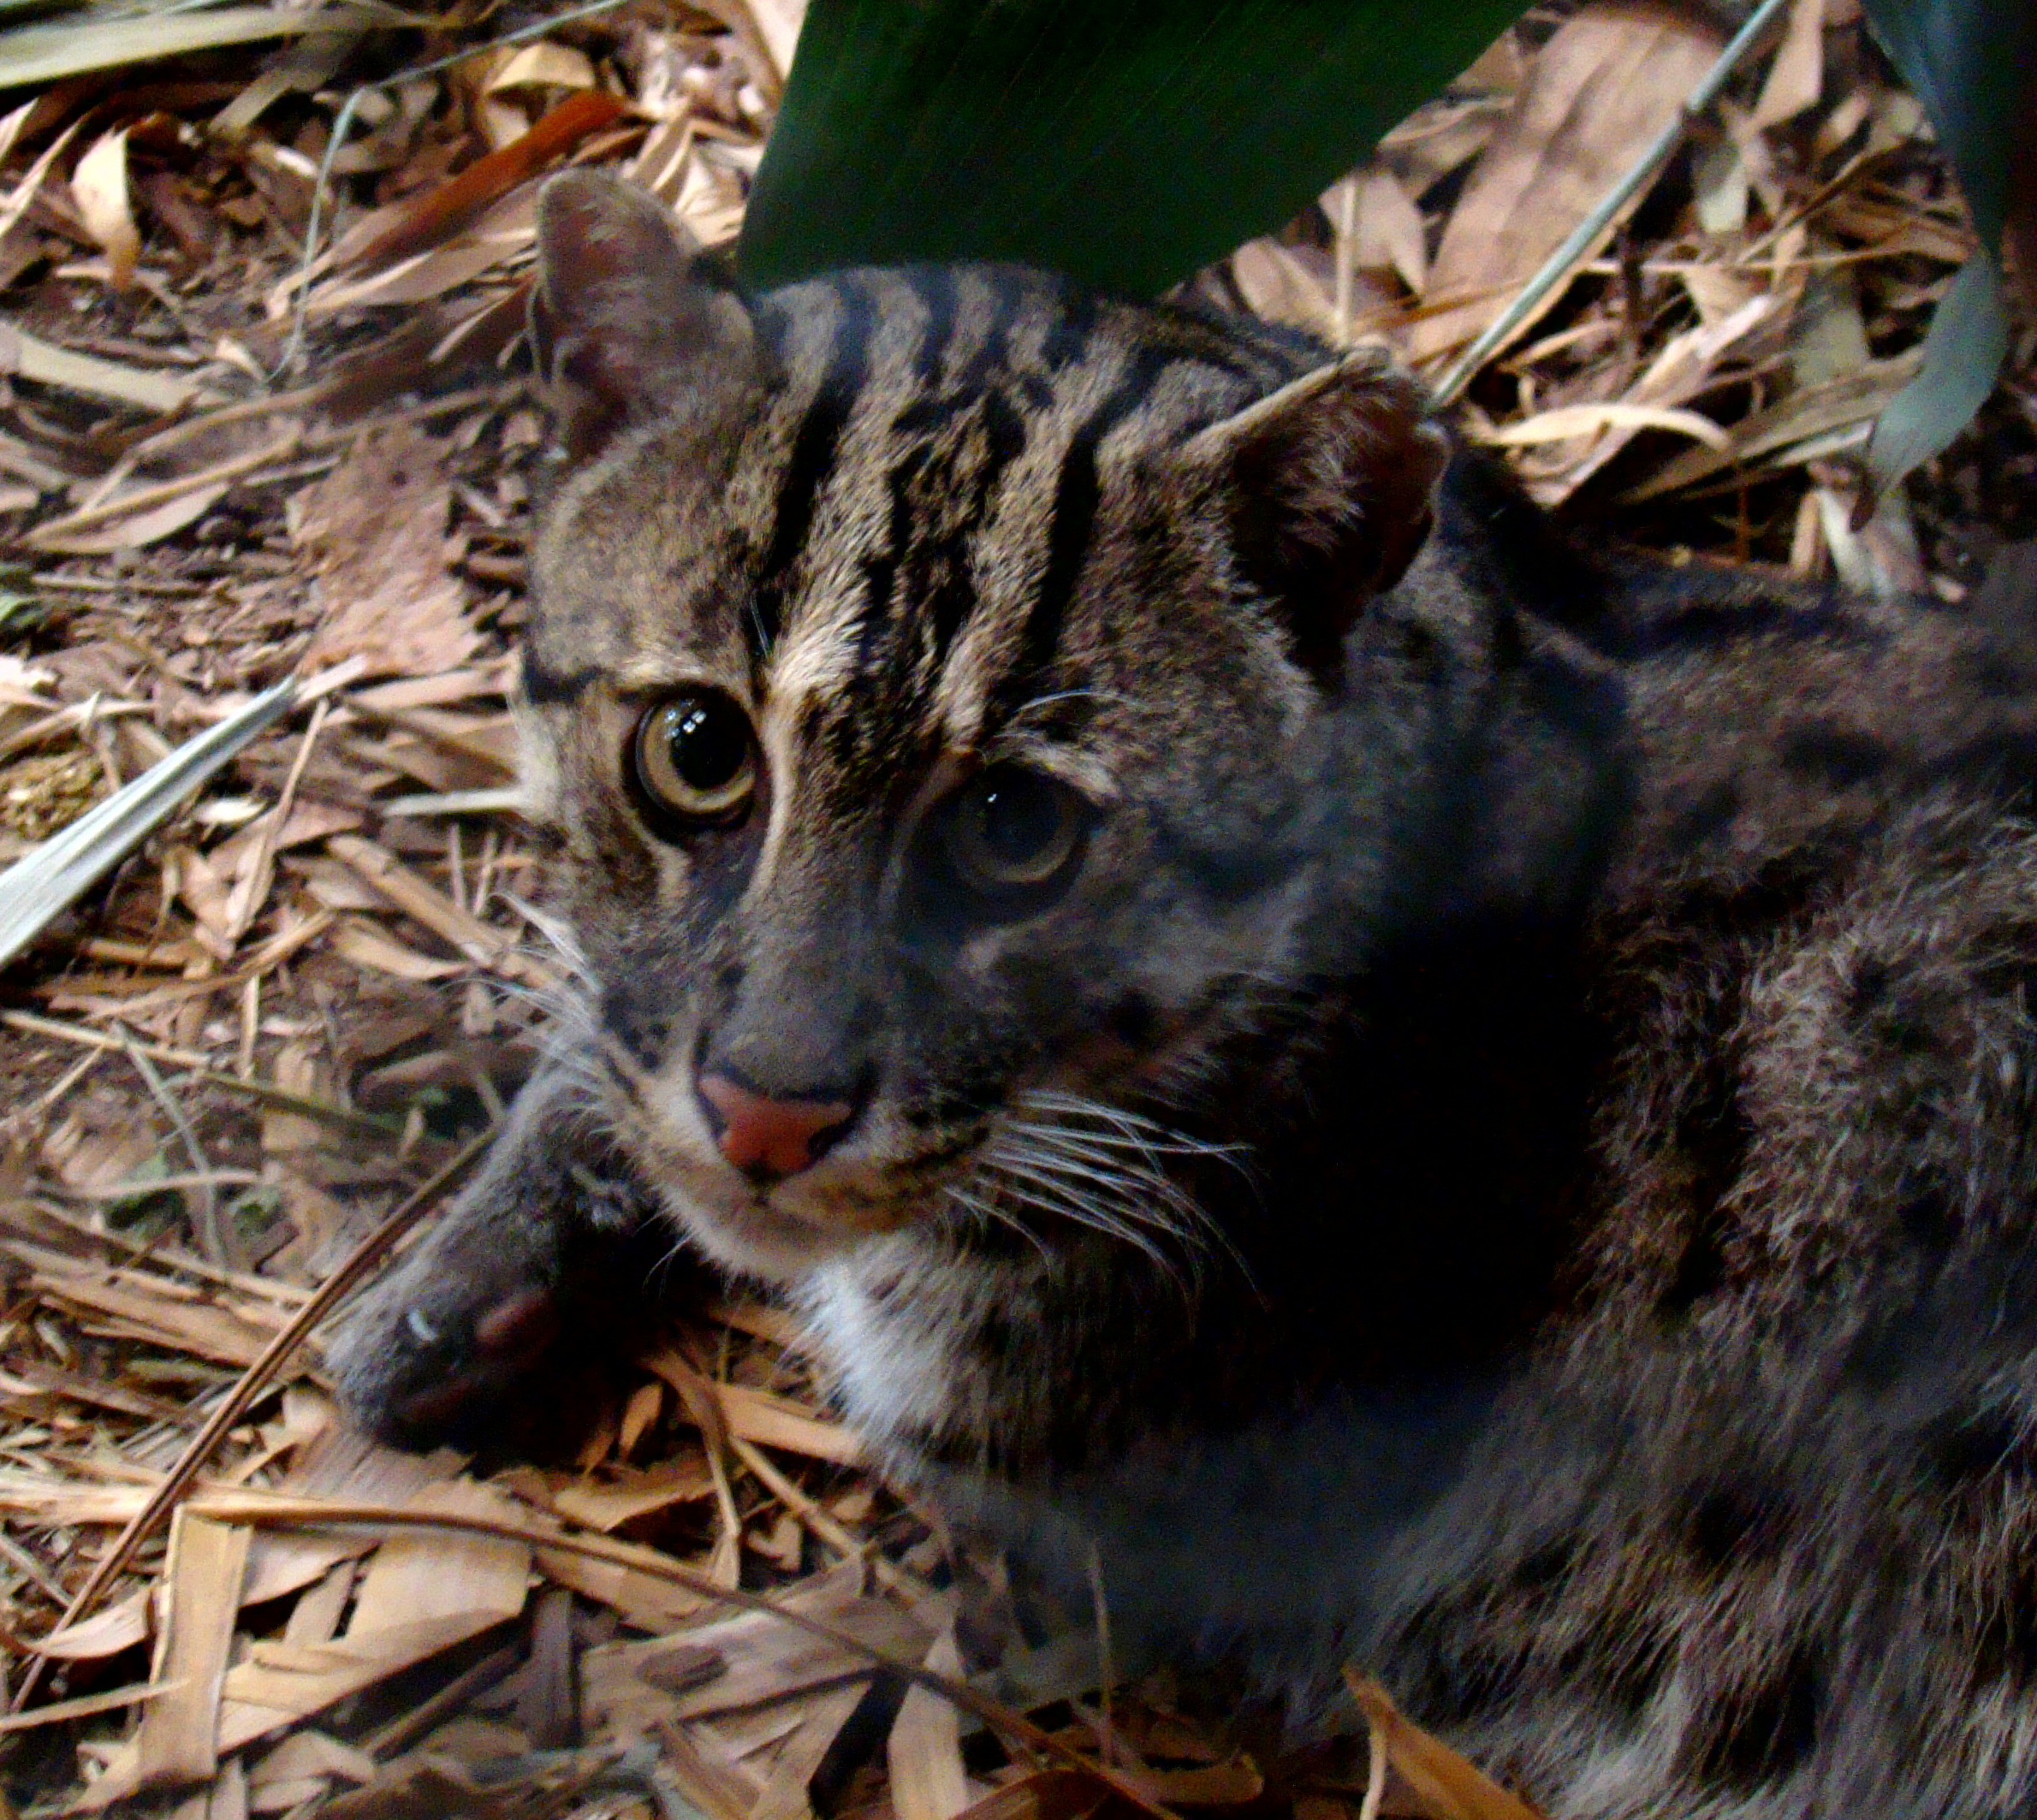 http://upload.wikimedia.org/wikipedia/commons/d/db/Portrait_of_a_Fishing_Cat_at_Taronga.jpg